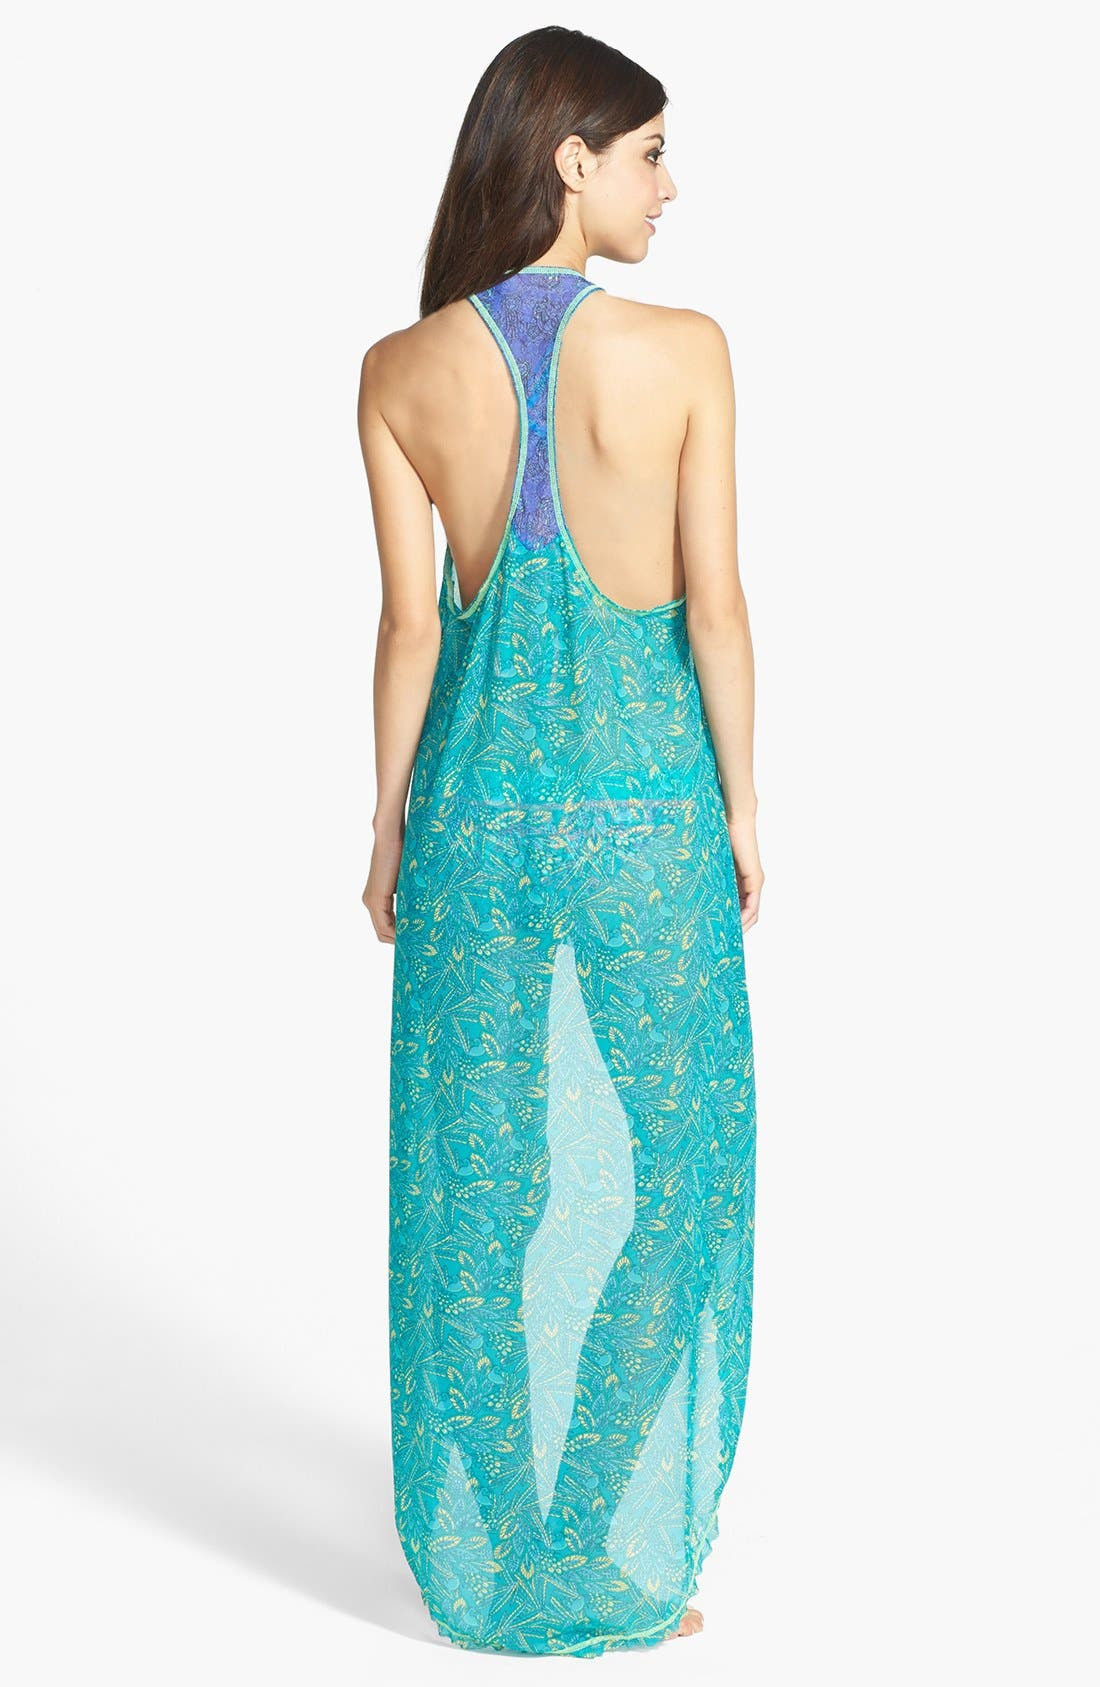 Alternate Image 2  - Maaji 'Darling Sparrow' High/Low Cover-Up Dress (Nordstrom Exclusive)